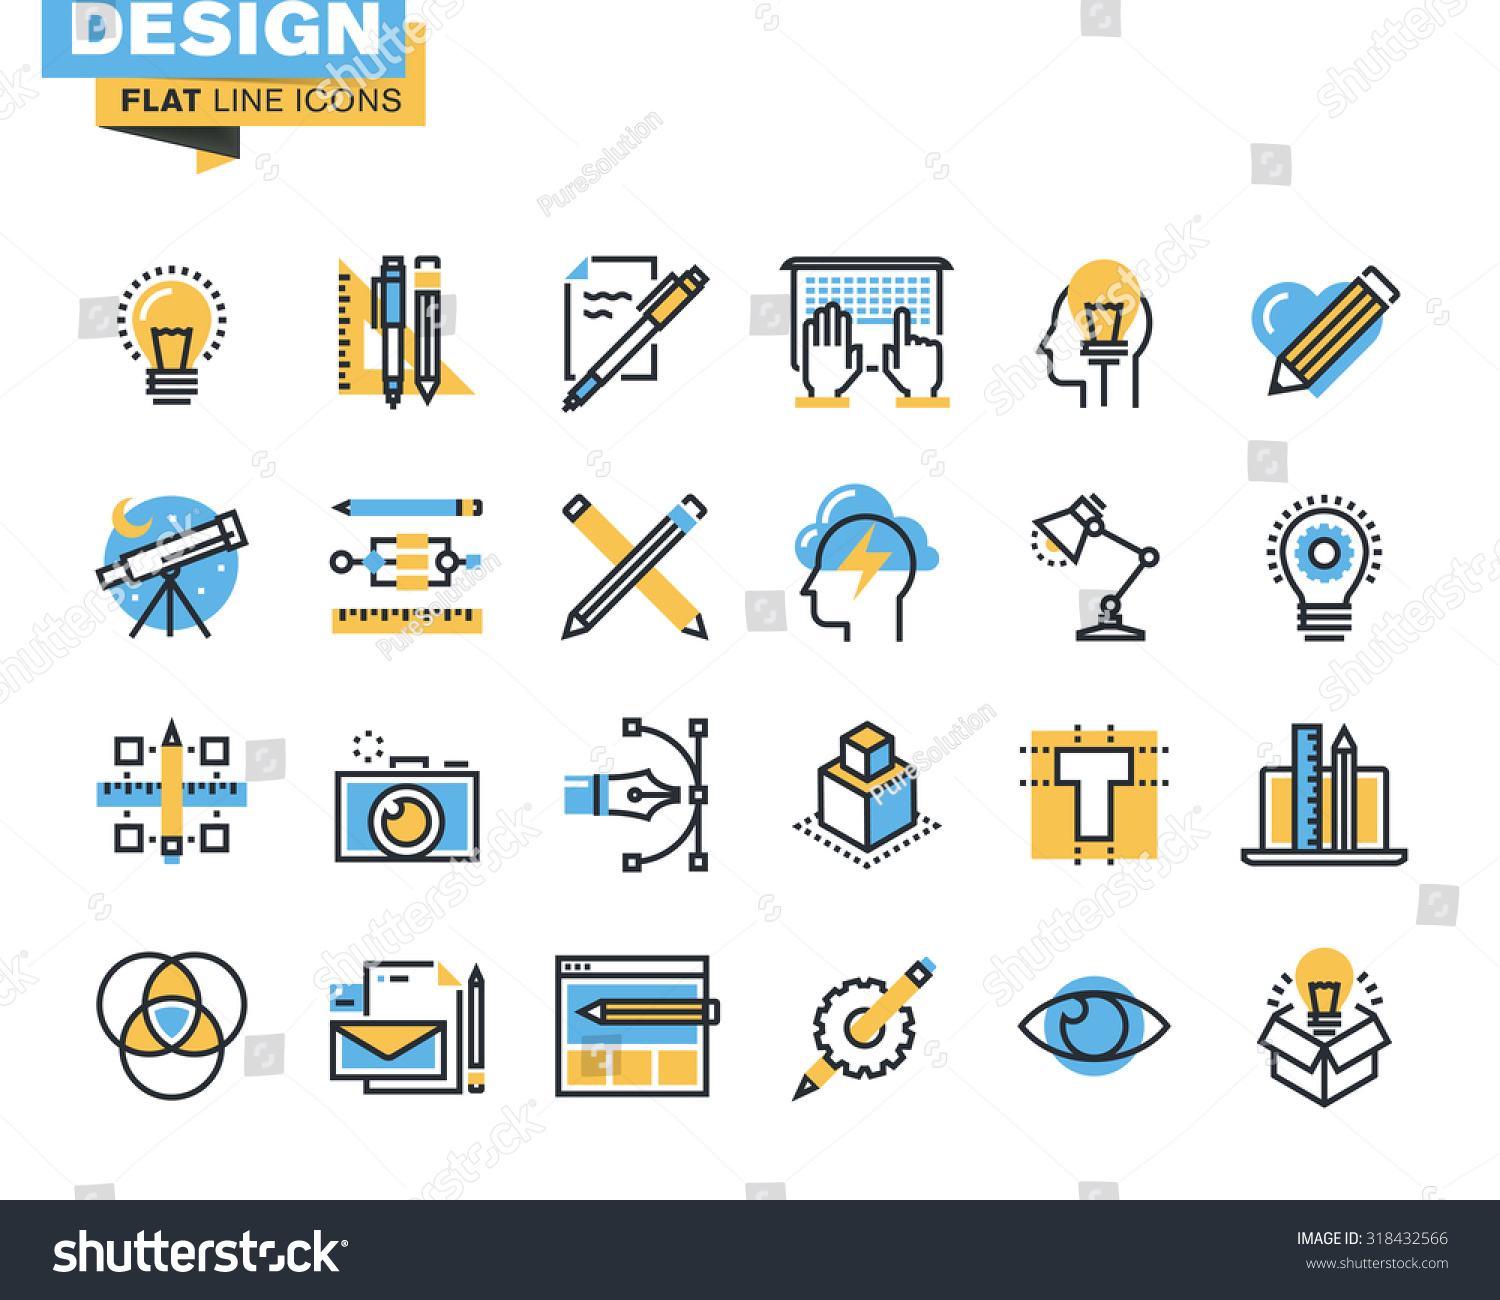 Trendy flat line icon pack icons stock vector 318432566 for Industrial design company